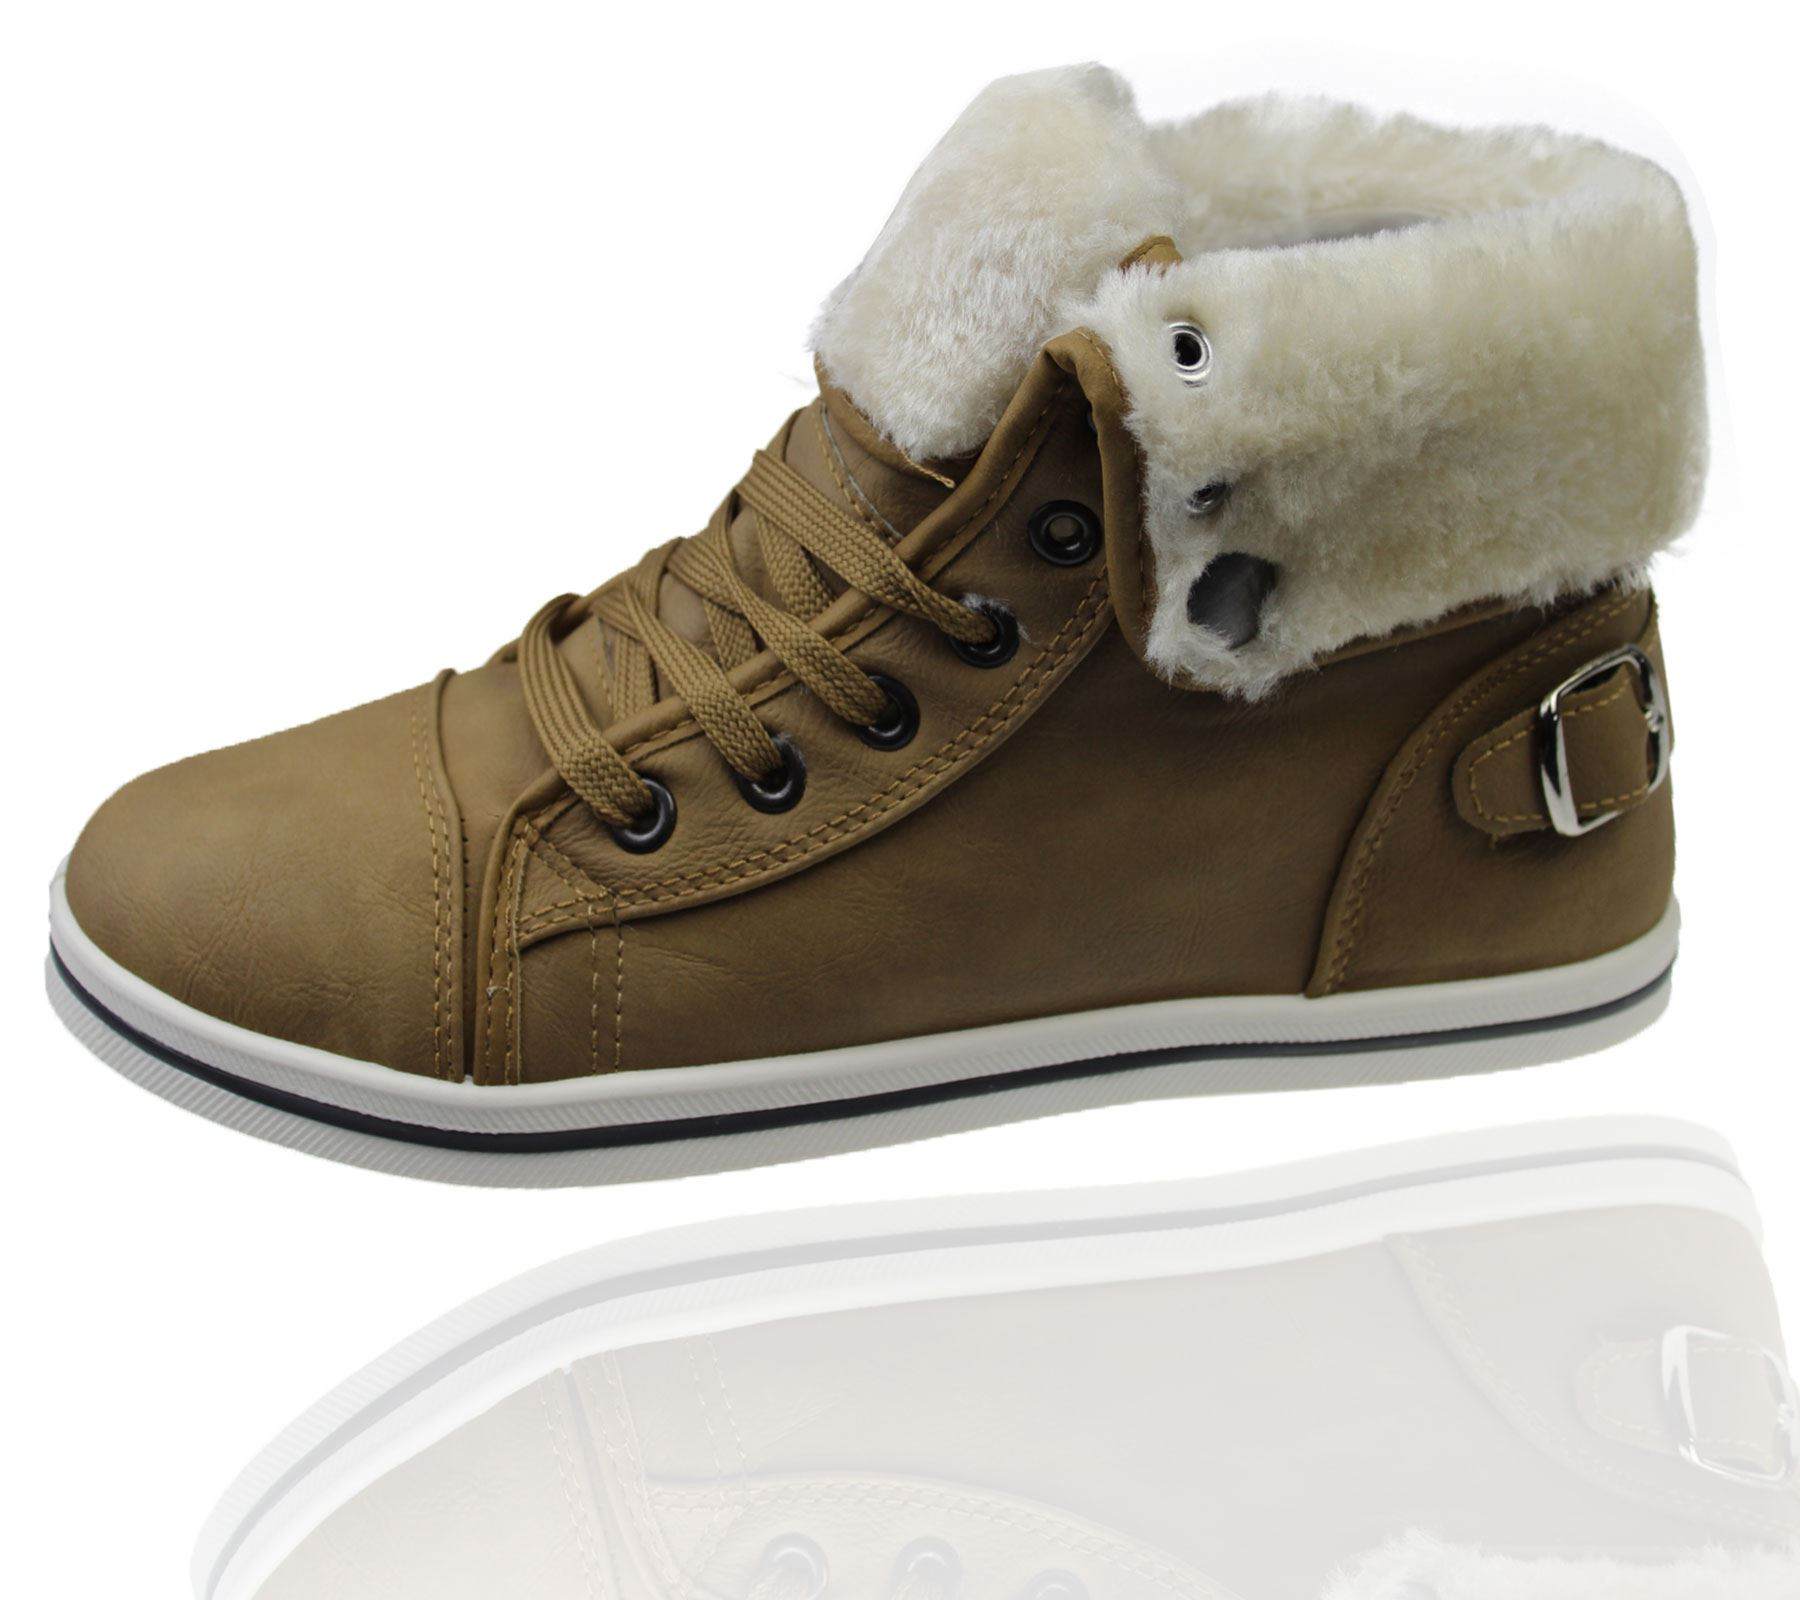 Girls-Boots-Womens-Warm-Lined-High-Top-Ankle-Trainer-Ladies-Winter-Shoes-Size miniatura 5